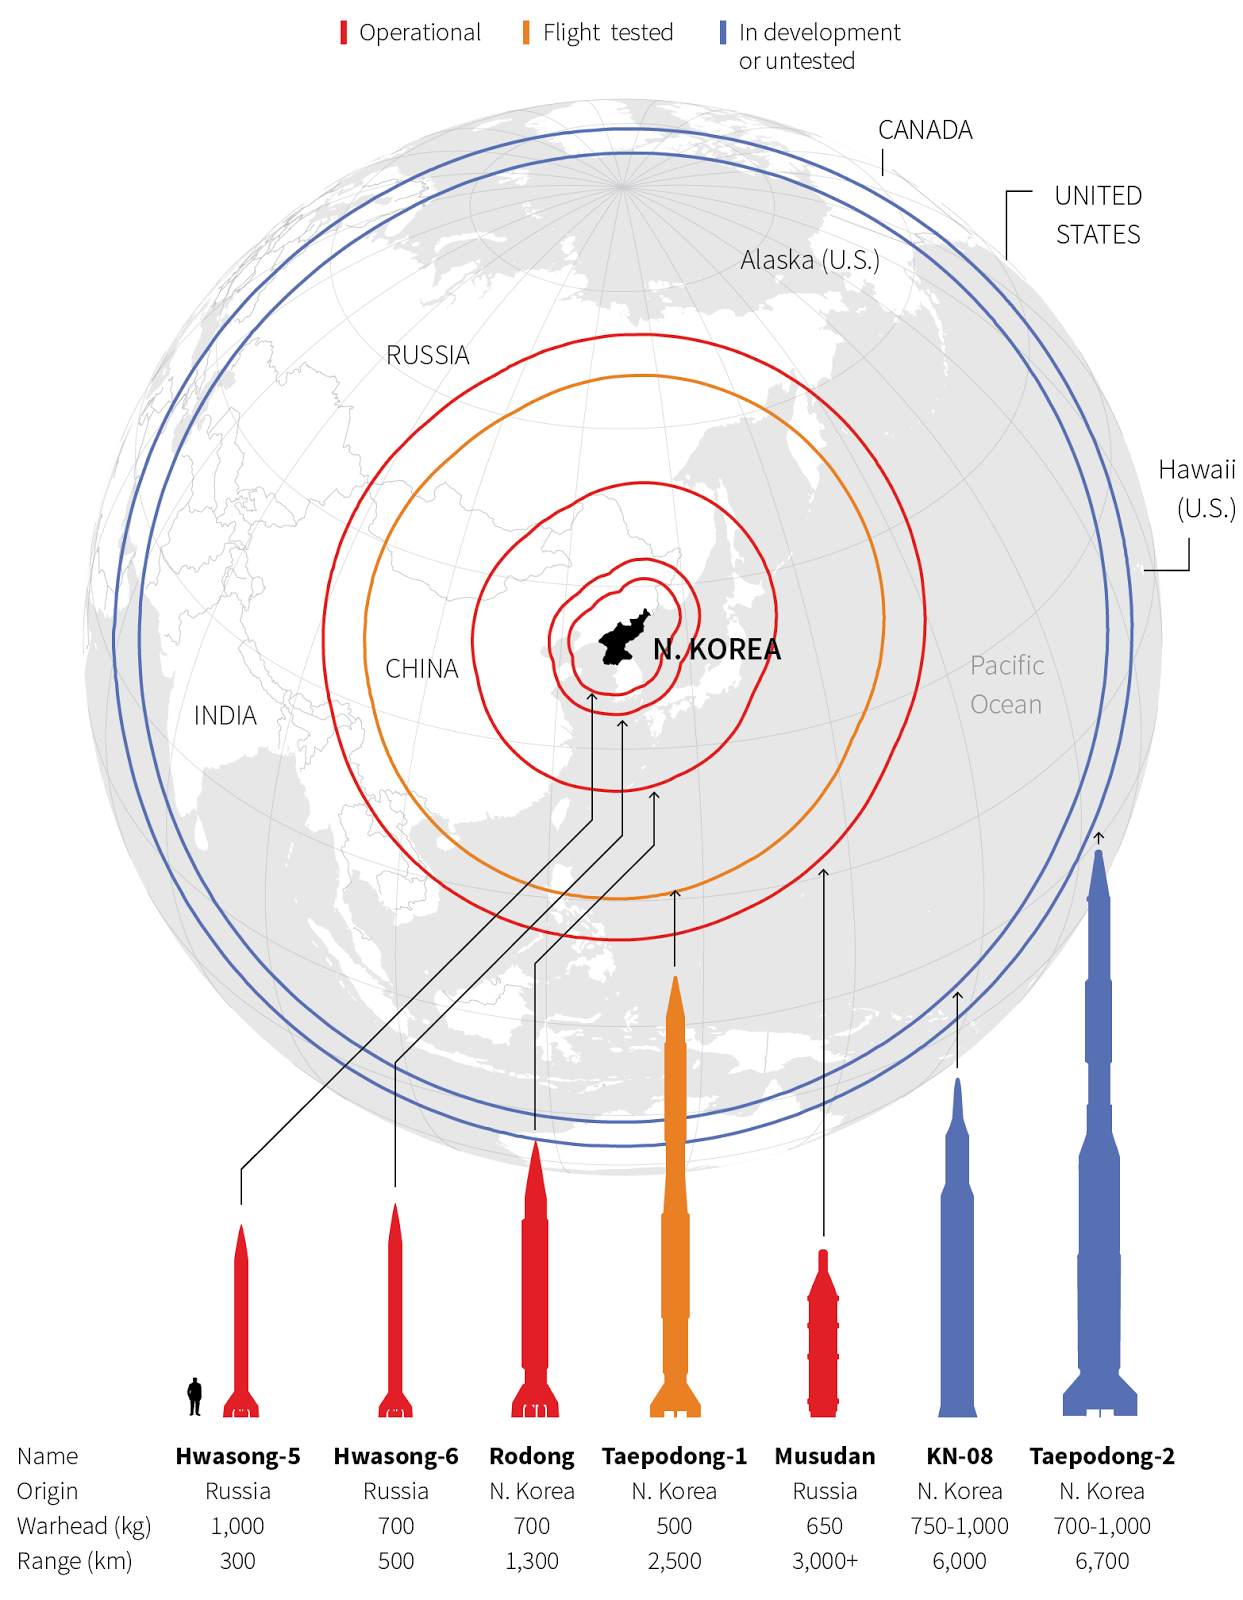 North Korea's estimated ballistic missile ranges